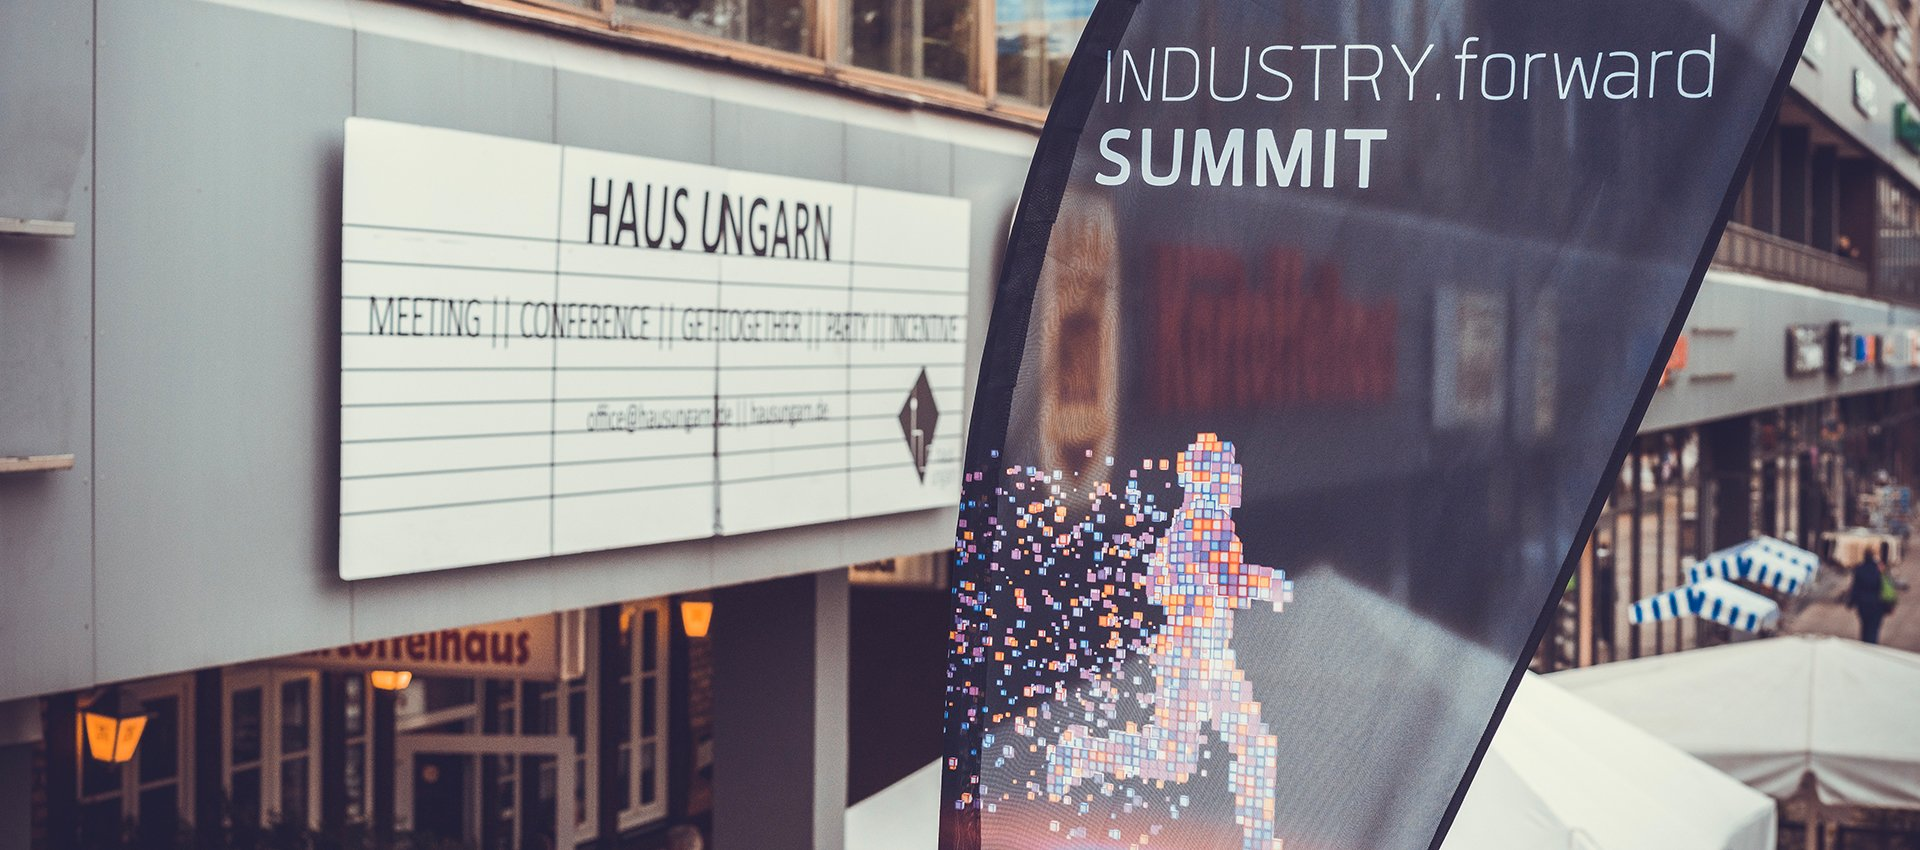 Der INDUSTRY.forward Summit im Haus Ungarn